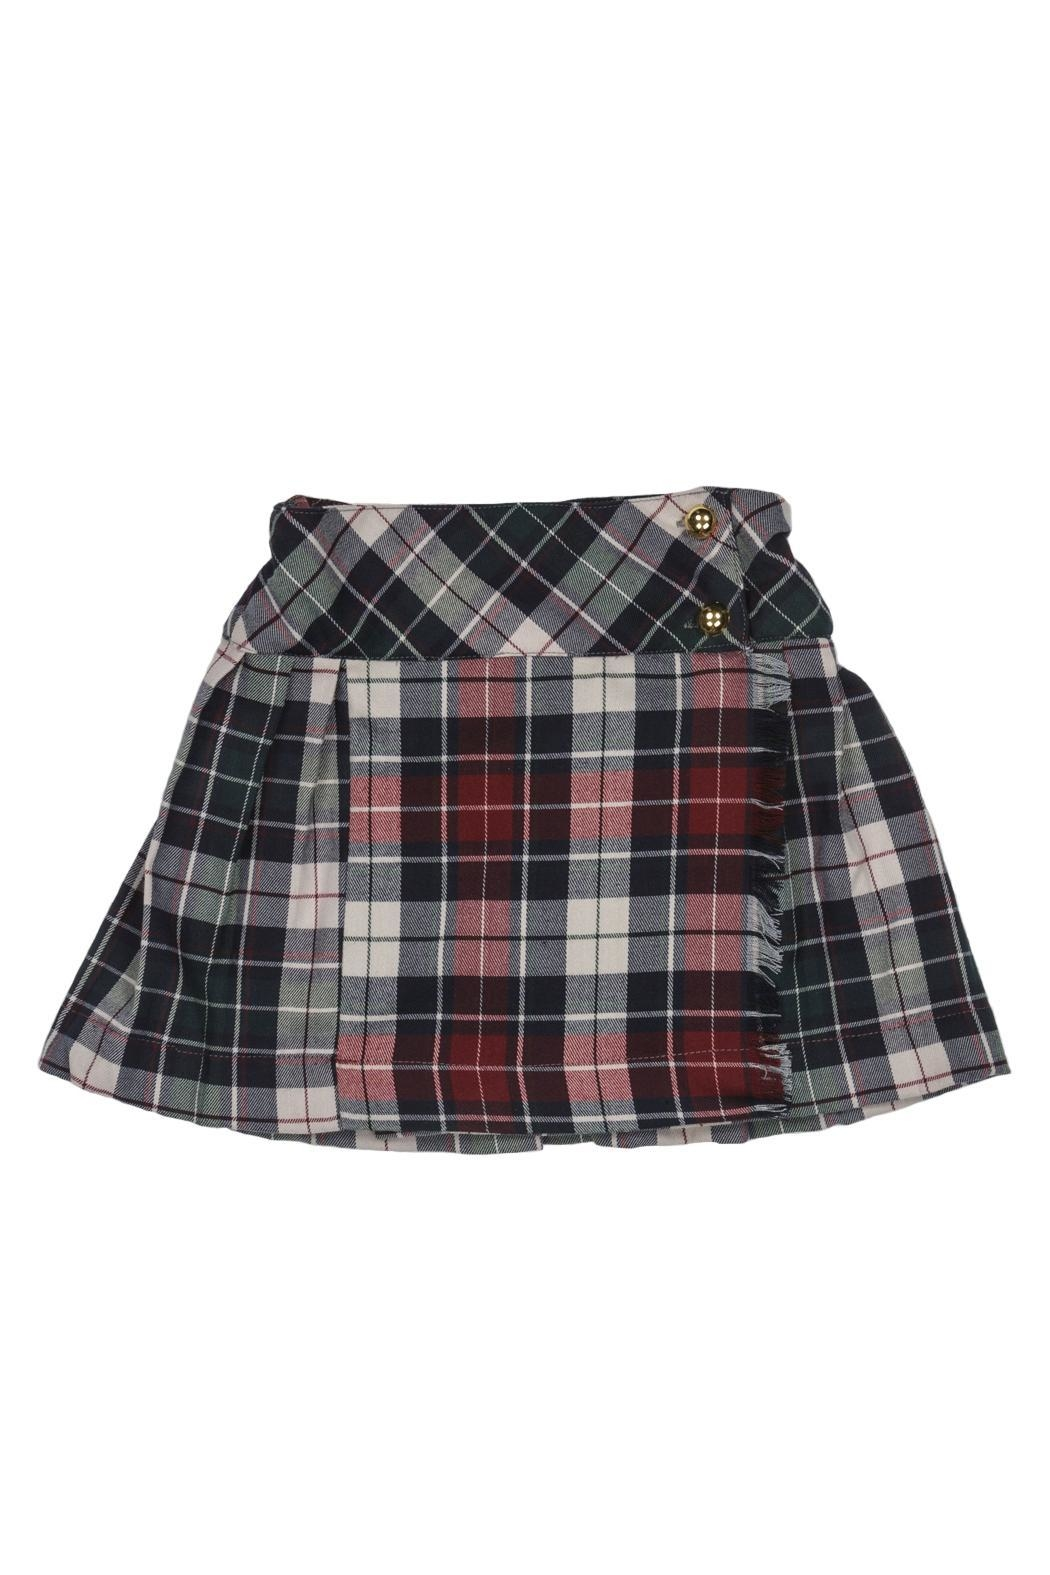 Malvi & Co. Green Bordeaux Kilt. - Main Image